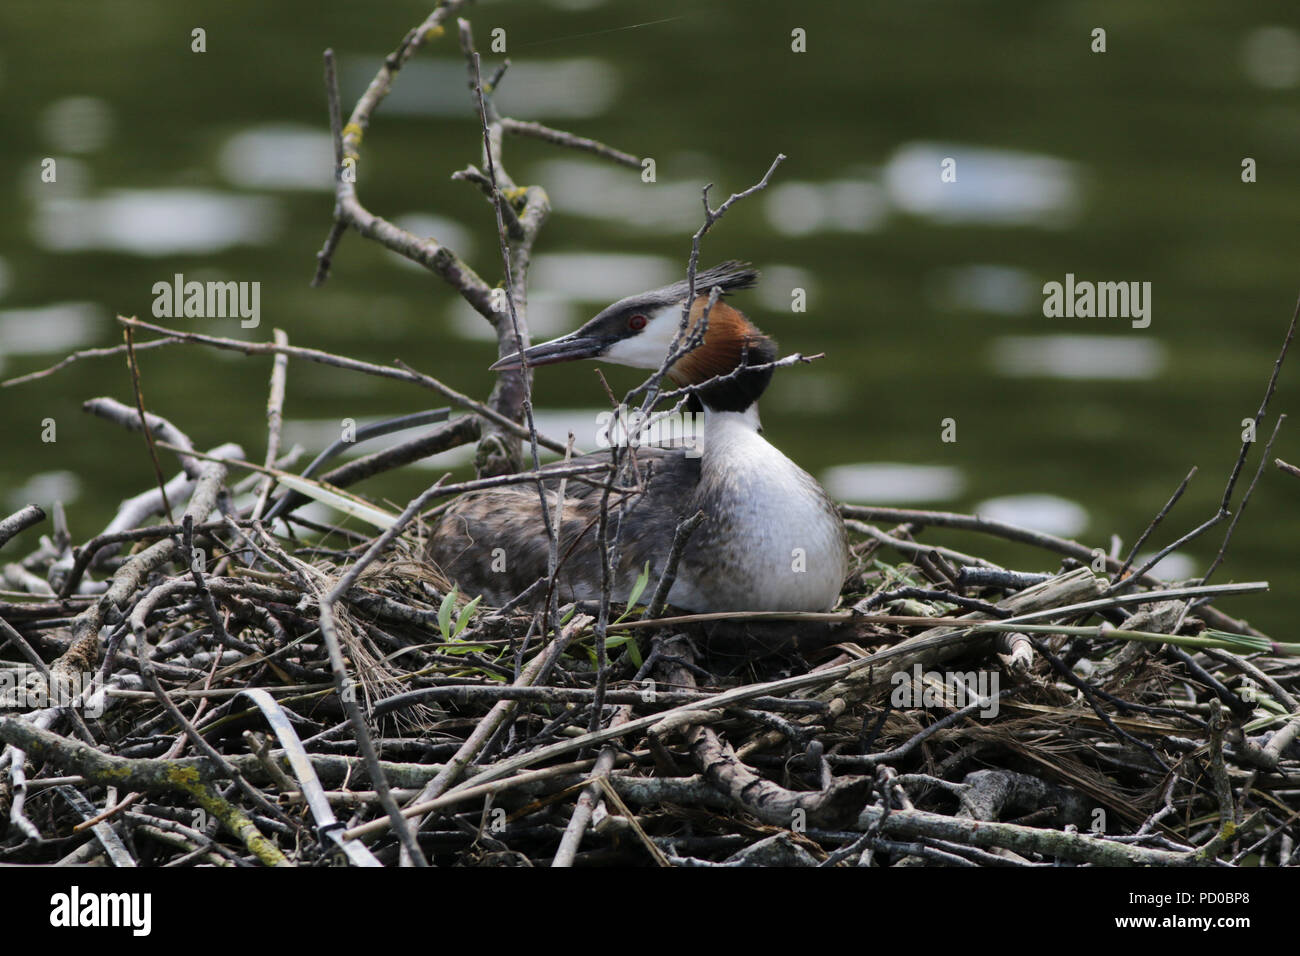 Great crested grebe, podiceps cristatus, Ranworth Broad, Norfolk - Stock Image